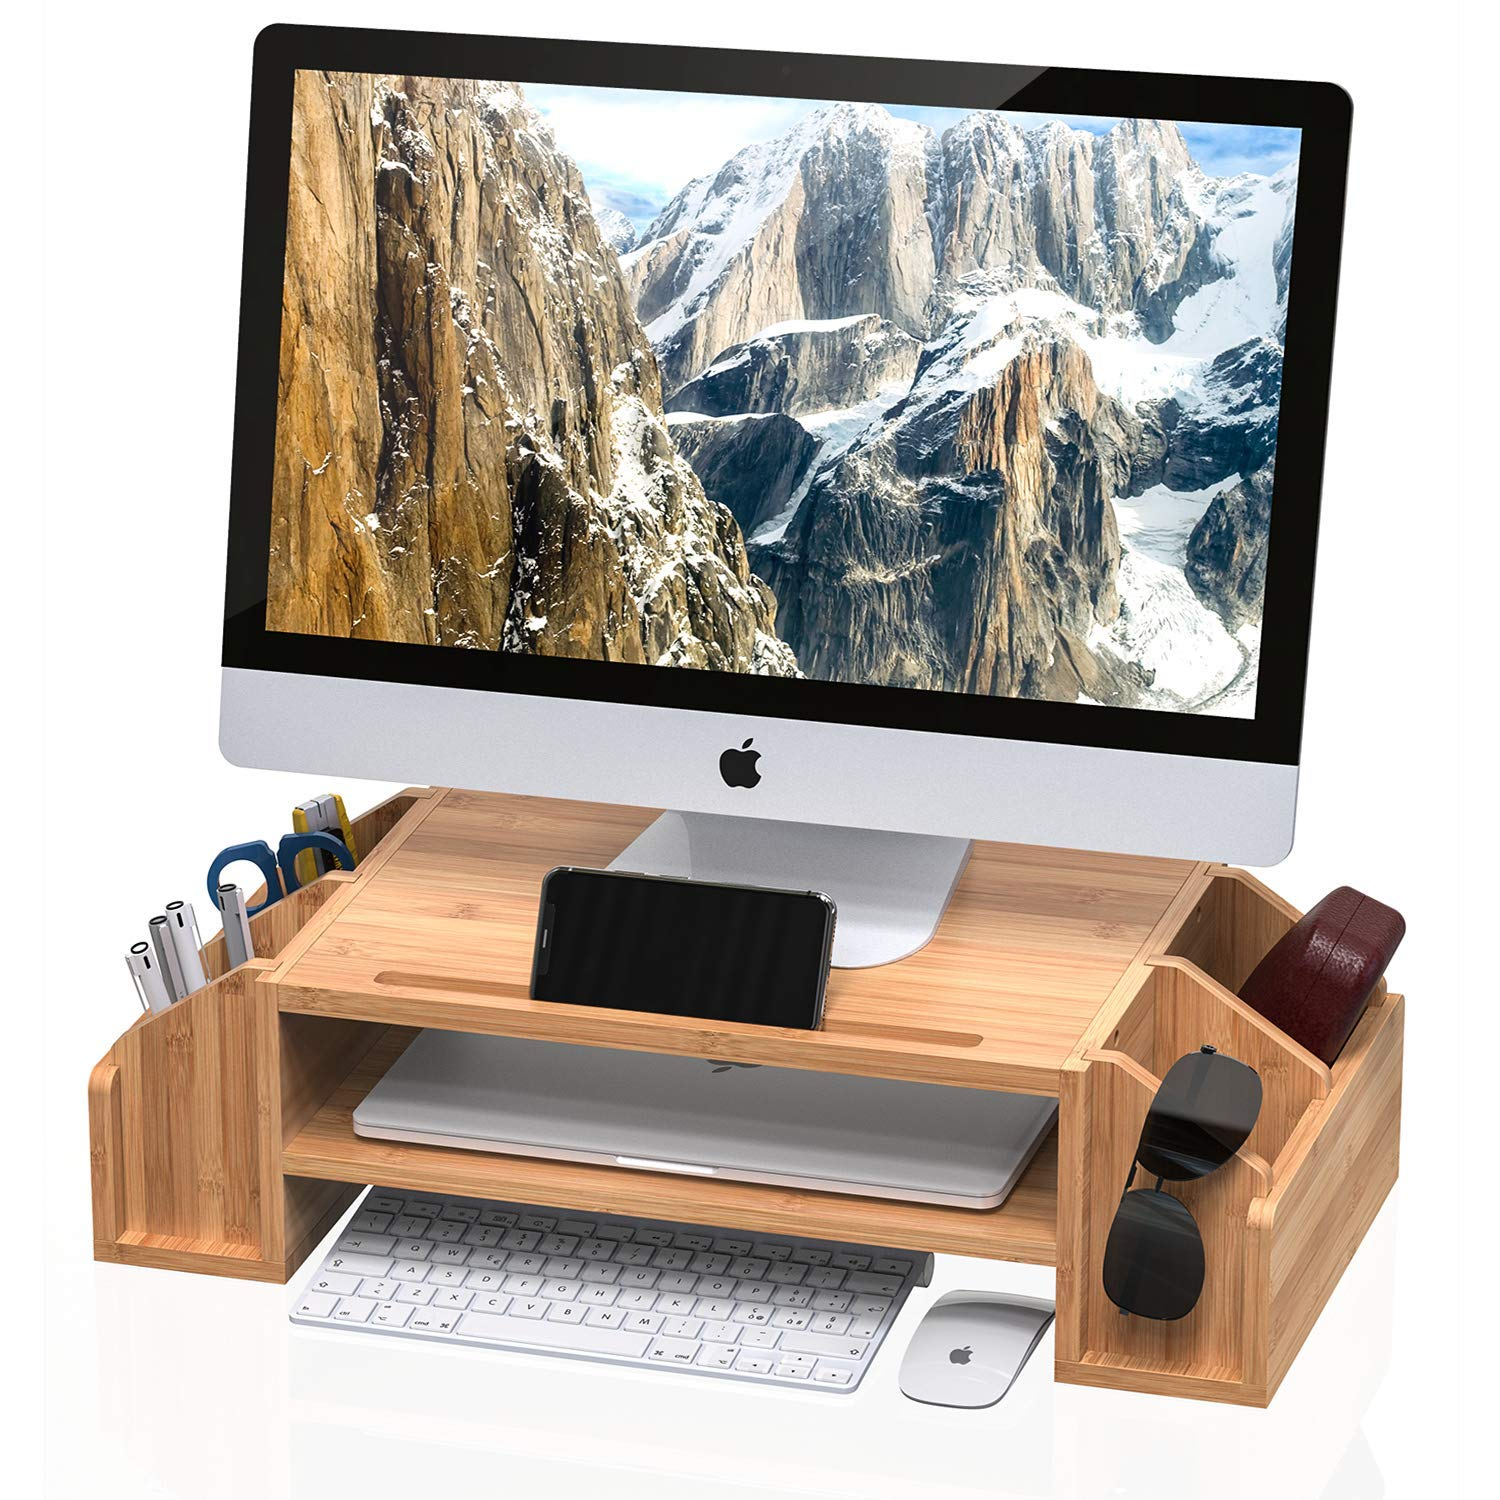 WELL WENG Bamboo 2-TIier Monitor Riser with Adjustable Storage Organizer Desktop Stand for iMac,Printer,Notebook,Xbox one,PS4 (MR3-SG)) by WELL WENG